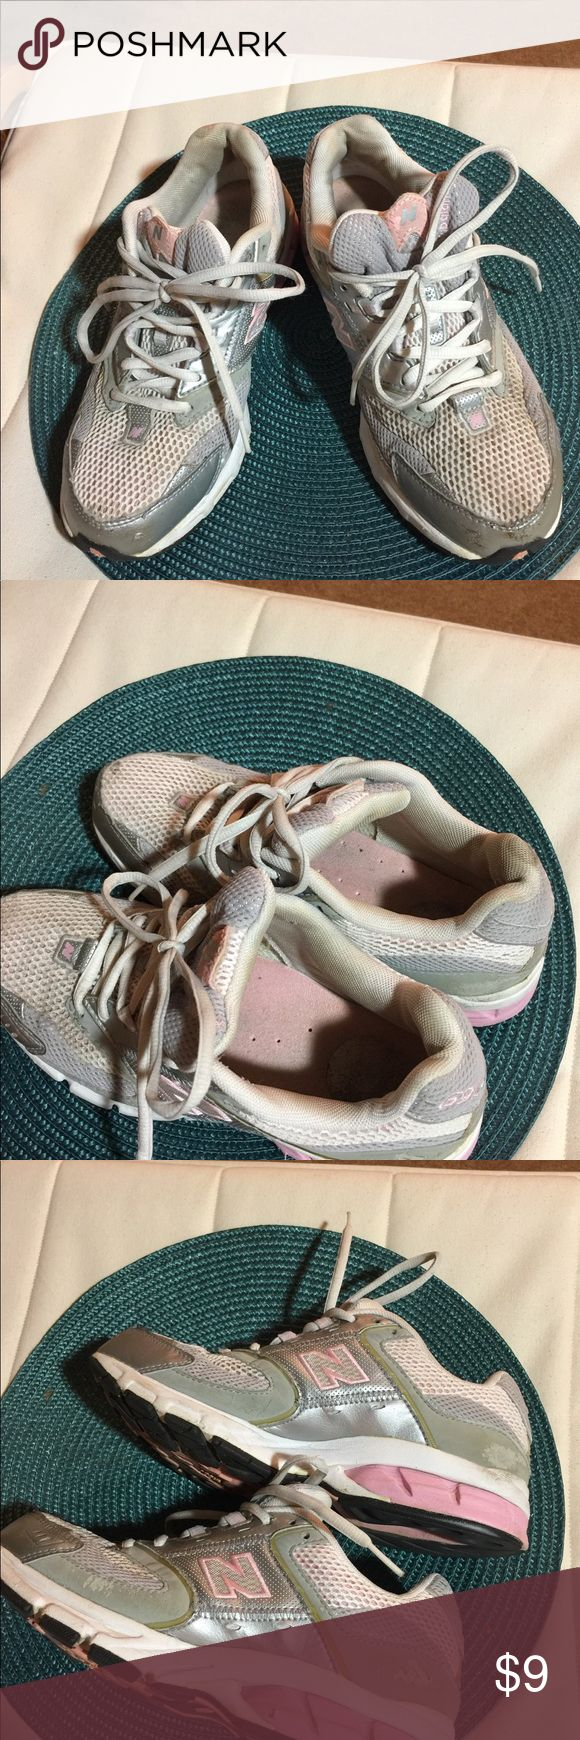 """New Balance Women's Pink/Gray Walking Shoes These size 8 pink and gray walking shoes have been used for walking in the neighborhood. They have some discoloration on inside of tongue but outside of shoe looks good with just slight scuff on toes. Soles really do not show any wear. I am selling cheap as a hey may just need a good washing and I do not have the capability to do that. Therefore you will buy """"as is"""" and get a good deal if you wear an 8! New Balance Shoes Athletic Shoes"""